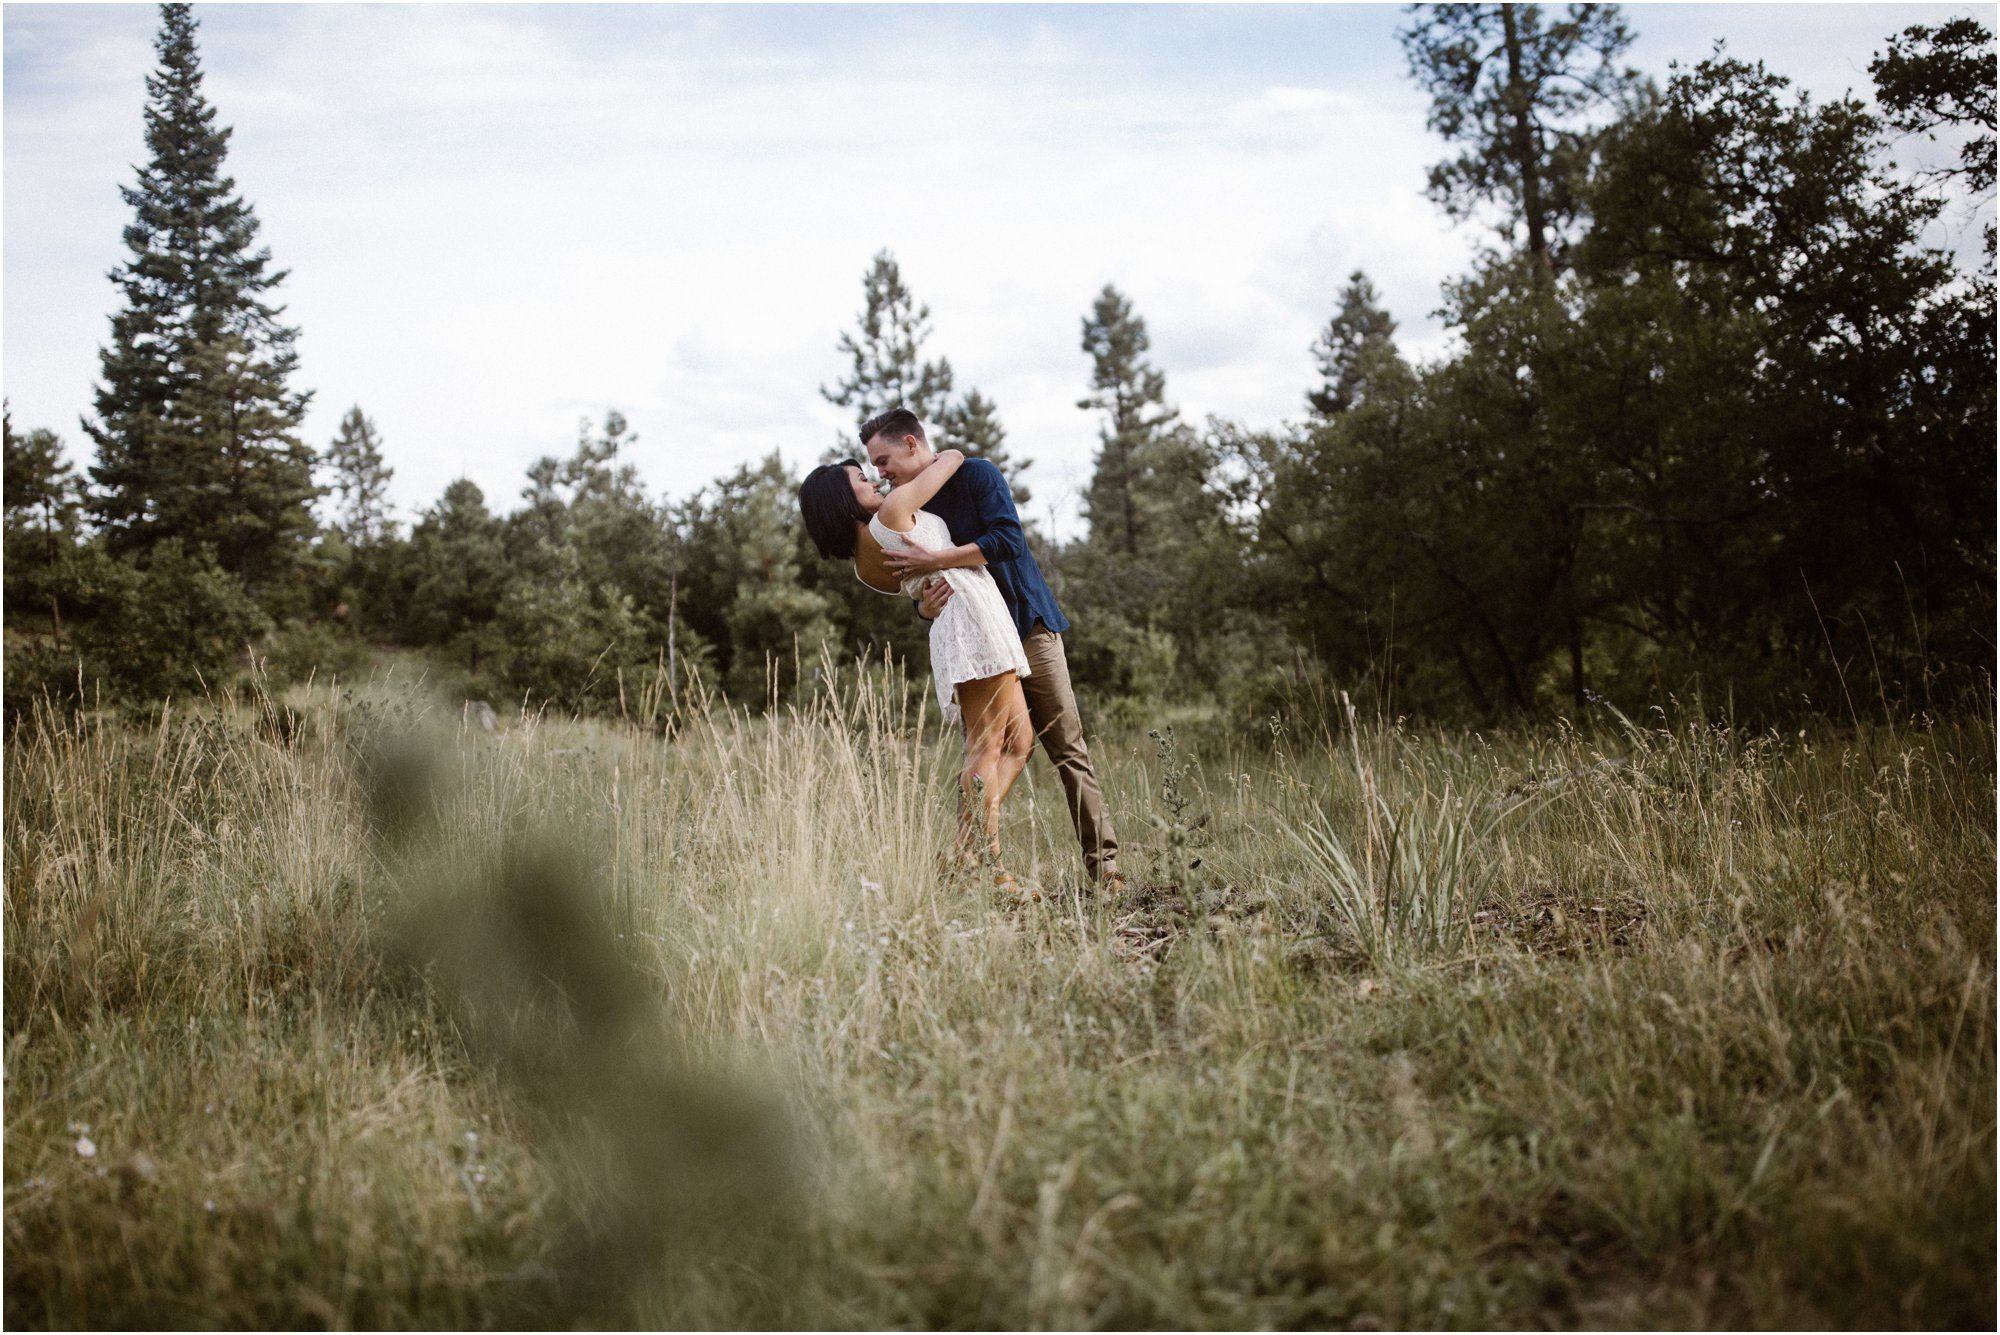 029Blue Rose Photography_ Albuquerque Engagement Photographer_ Blue Rose Studios_ Anniversary Pictures Santa Fe Photographer